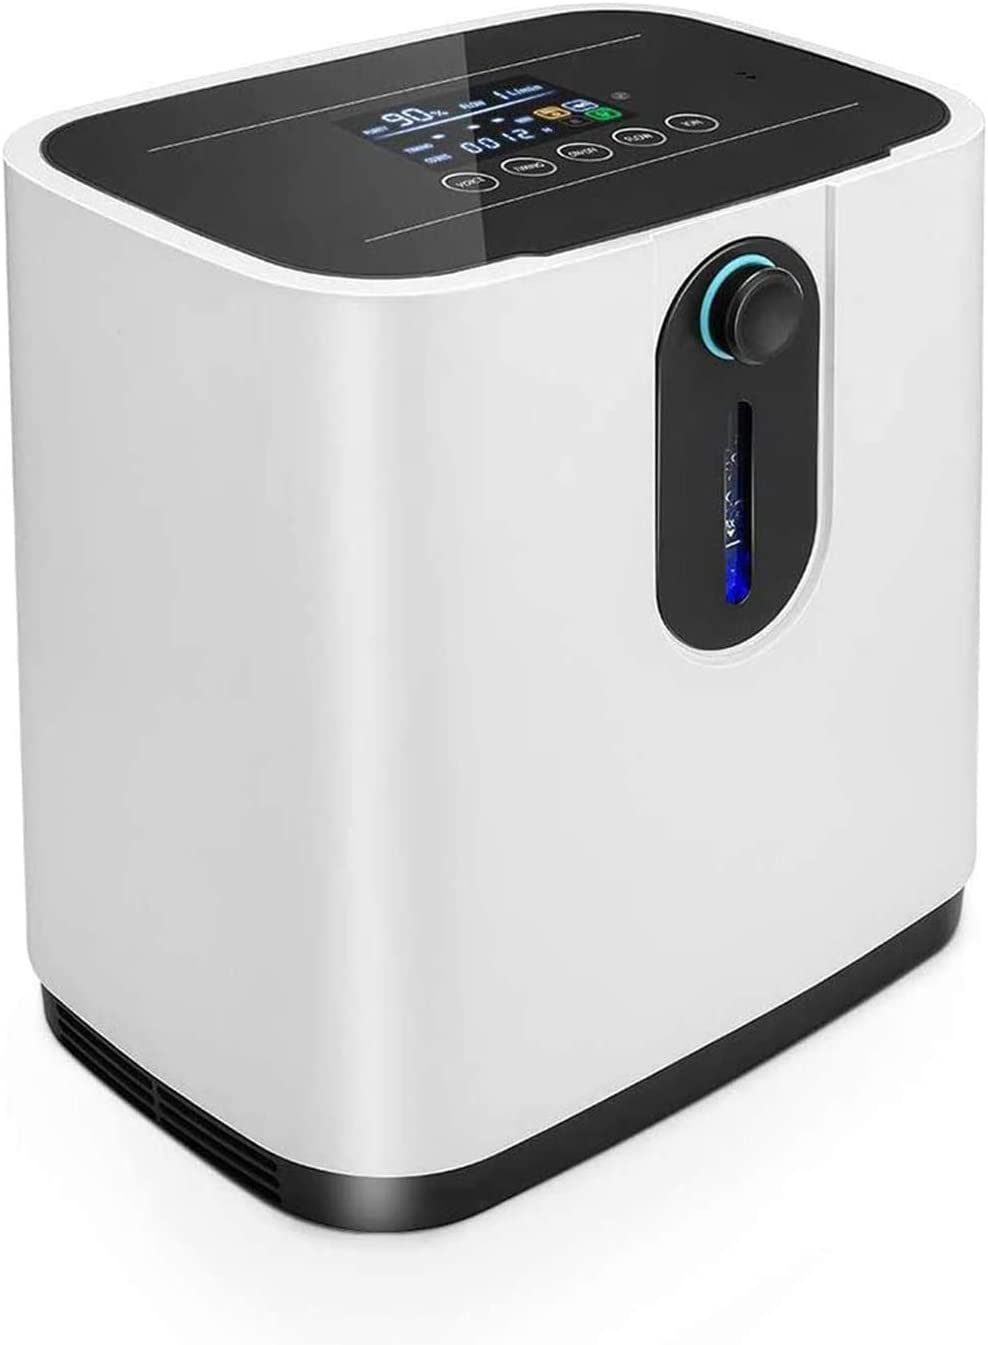 TTLIFE Newest Oxygen Concentrator, Better 1-7L/min Adjustable Portable Oxygen Machine for Home and Travel Use, The Best Oxygen Concentrator with Updated Large Capacity